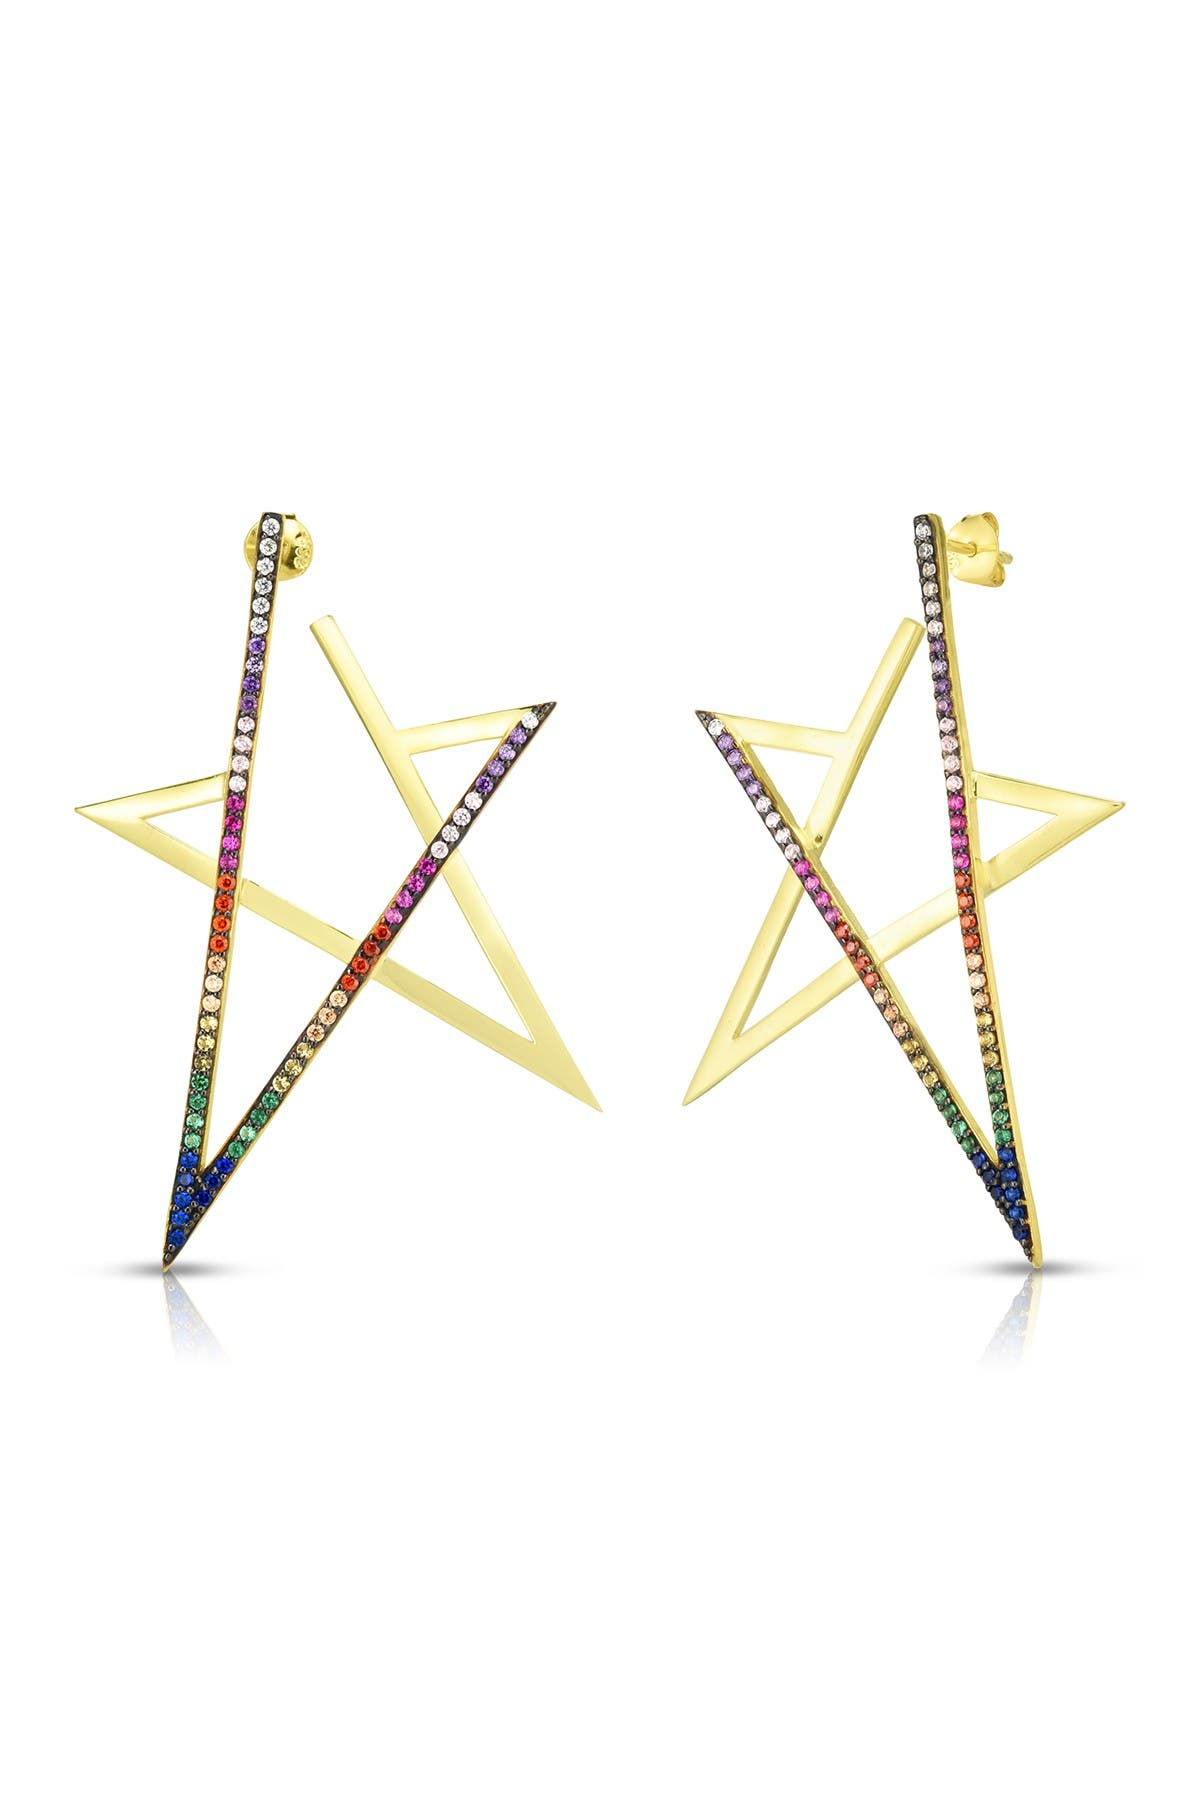 Image of Sphera Milano 14K Yellow Gold Plated Sterling Silver Pave Rainbow CZ Star Drop Earrings